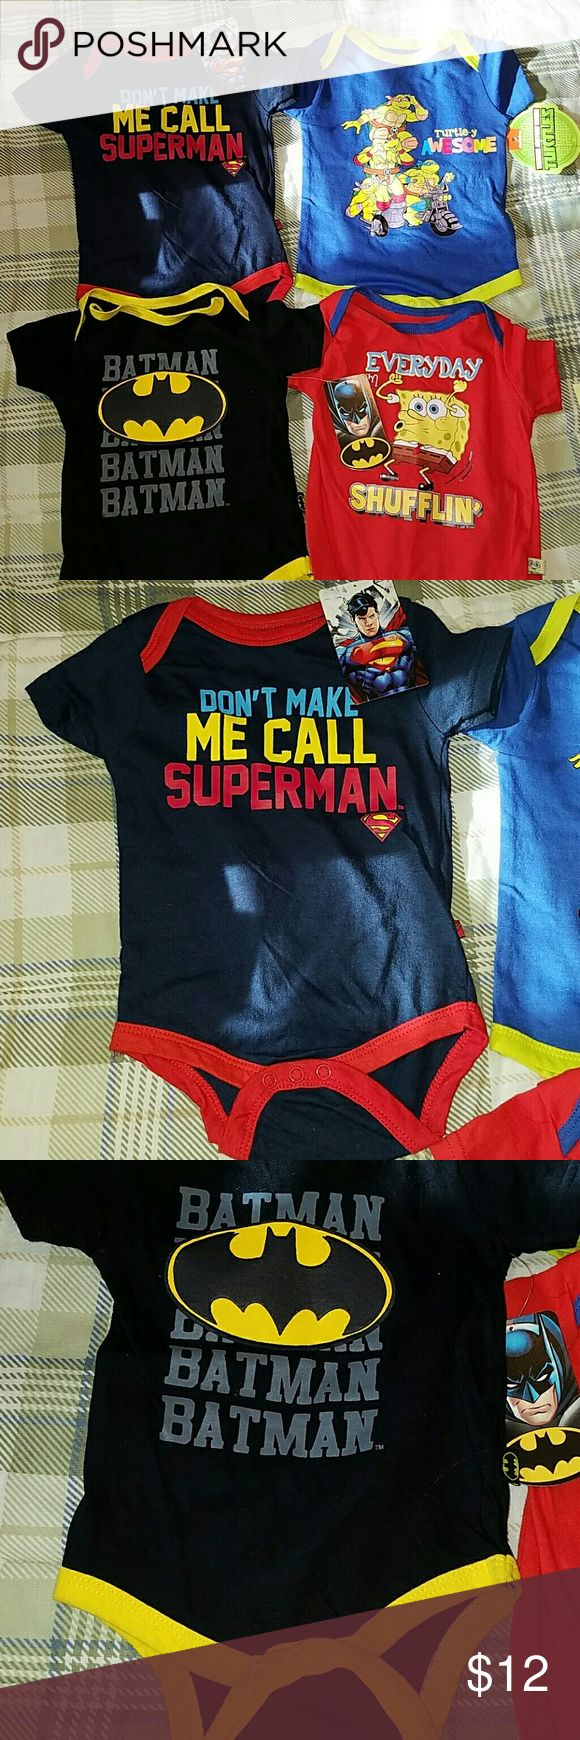 Superman/Batman/Turtles/SpongeBob Onesies Bundle NWT Superman/ Batman/ Turtles/ SpongeBob Onesies Bundle! Size 6/9 months...two of the onesies seem like the pictures/sewing is crooked...batman onesies looks like snap placed too close to the edge (pictured)...tag came off of superman onesie but I still have it to include...all are new and unused...too small for my son! They are adorable!  Ask with questions...reasonable offers considered! :-) One Pieces Bodysuits